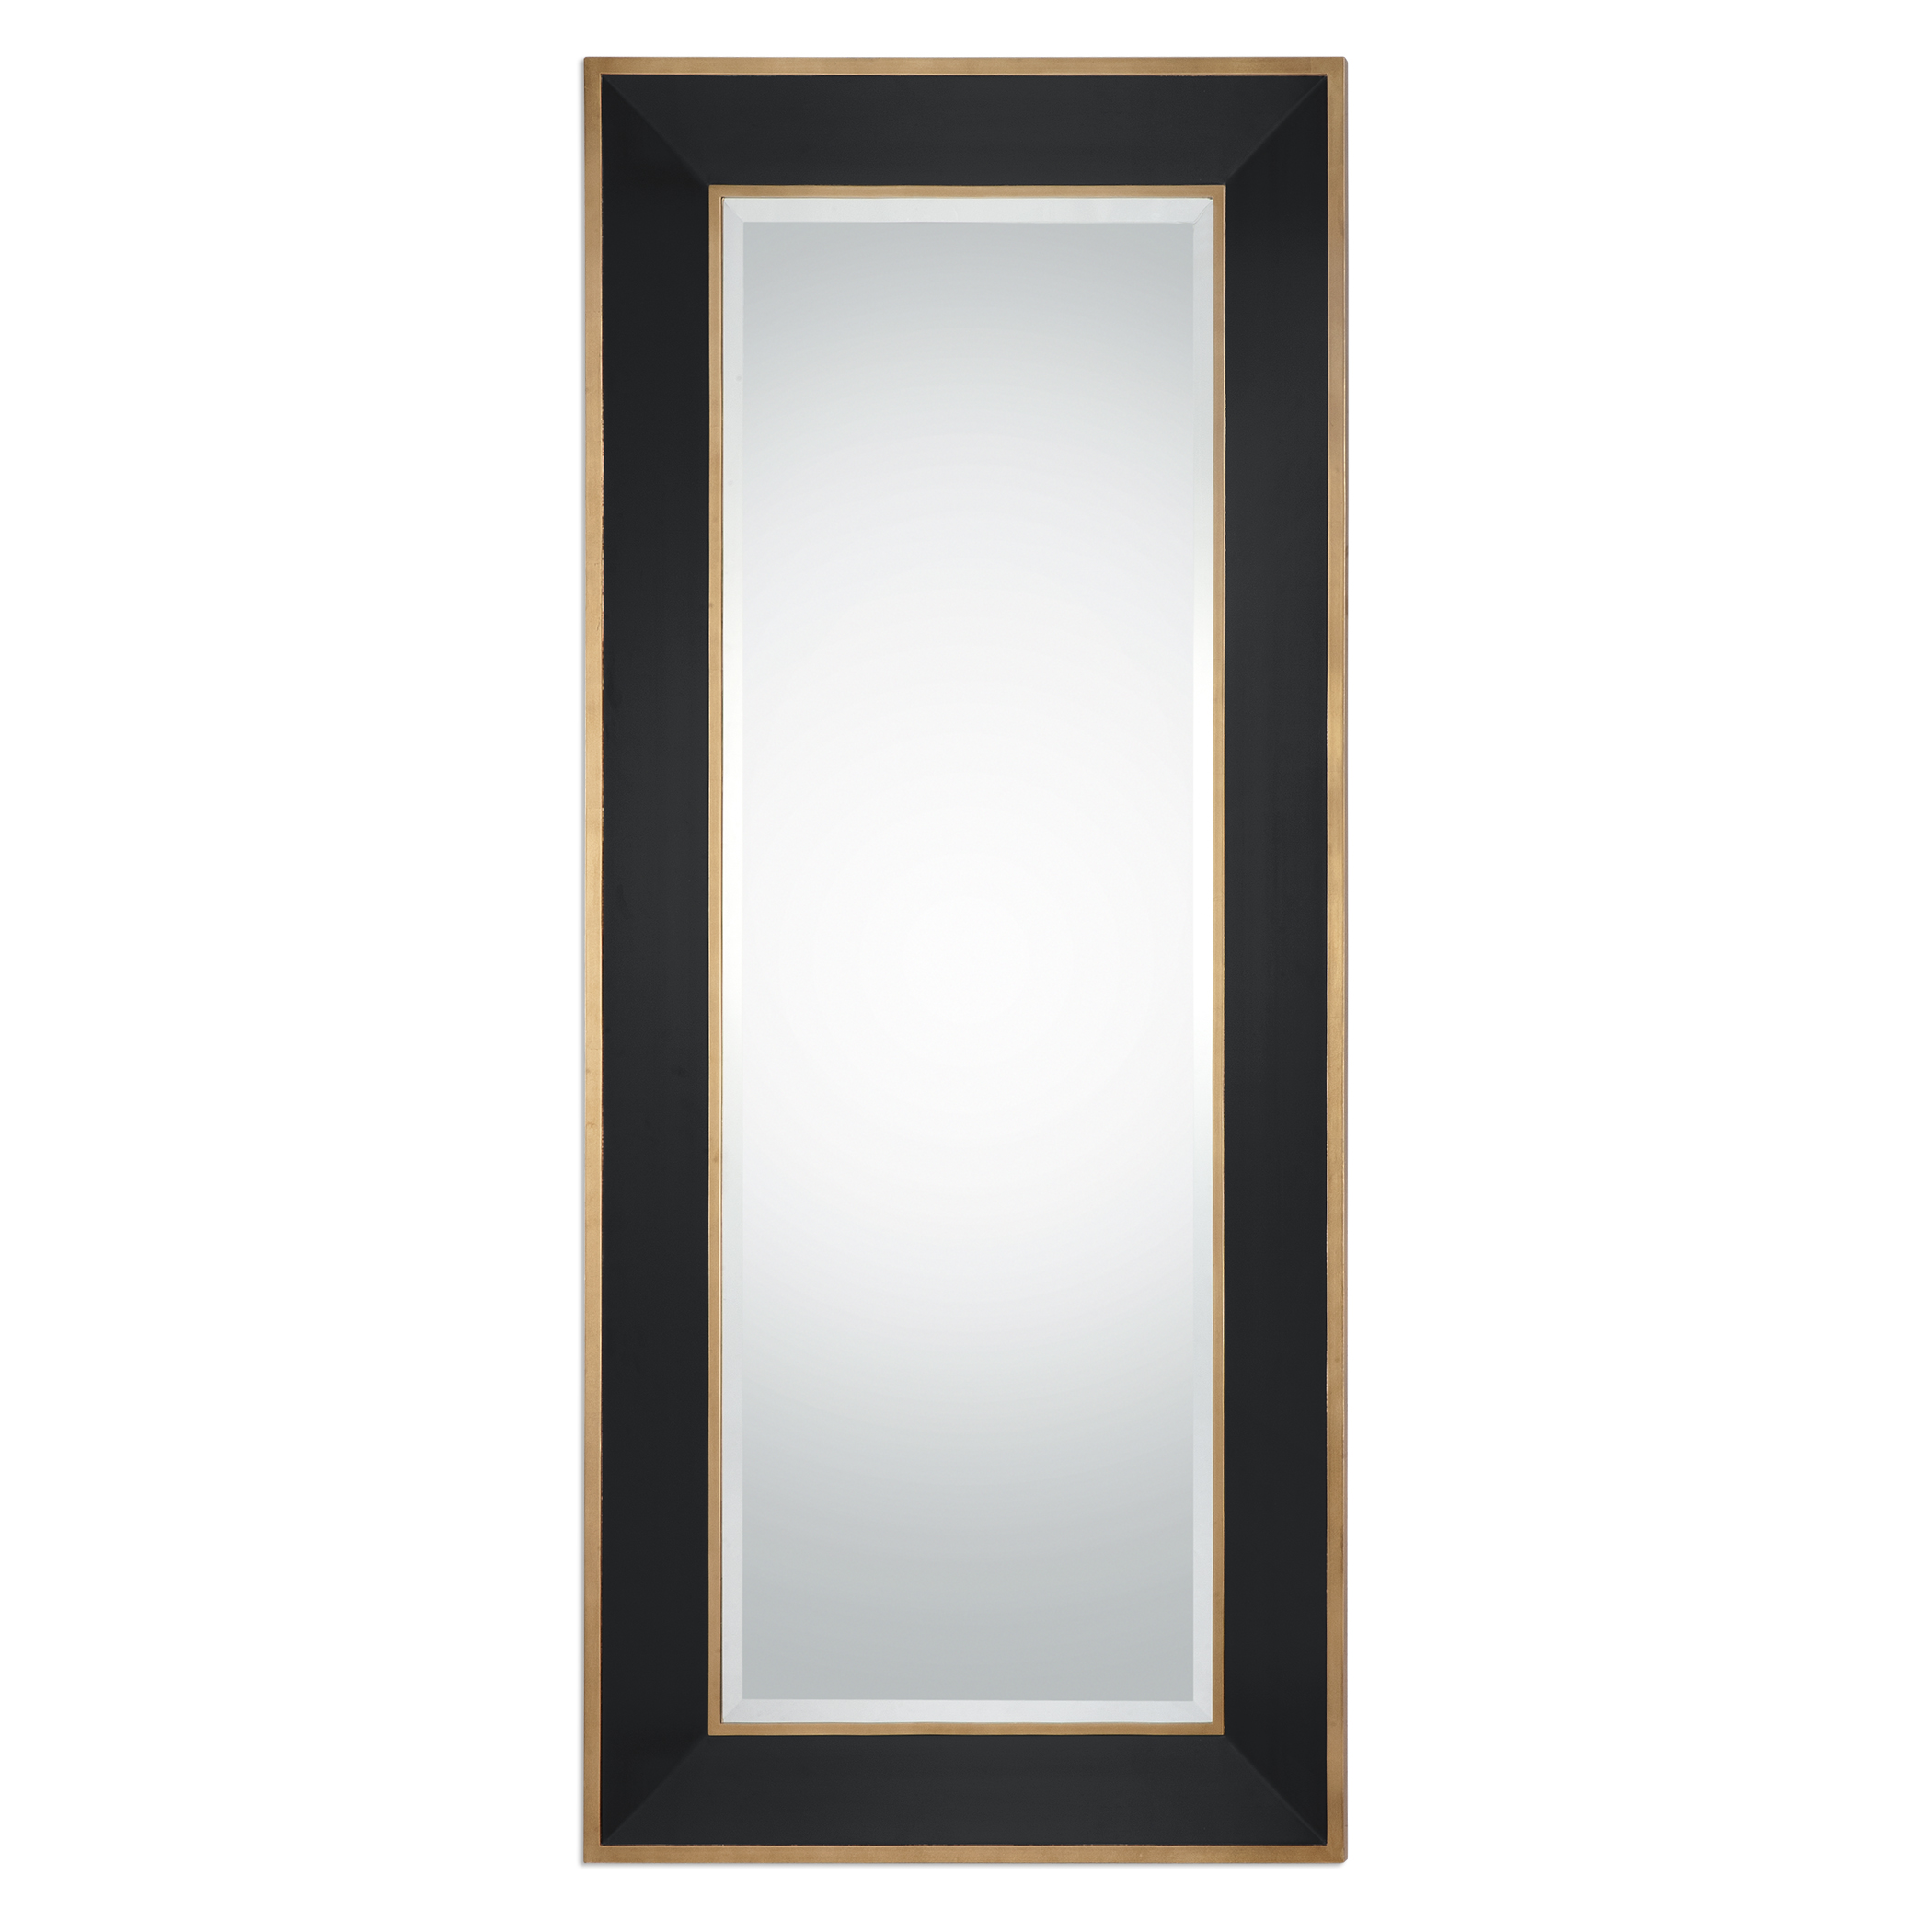 Uttermost Mirrors Cormor Black Mirror - Item Number: 09083